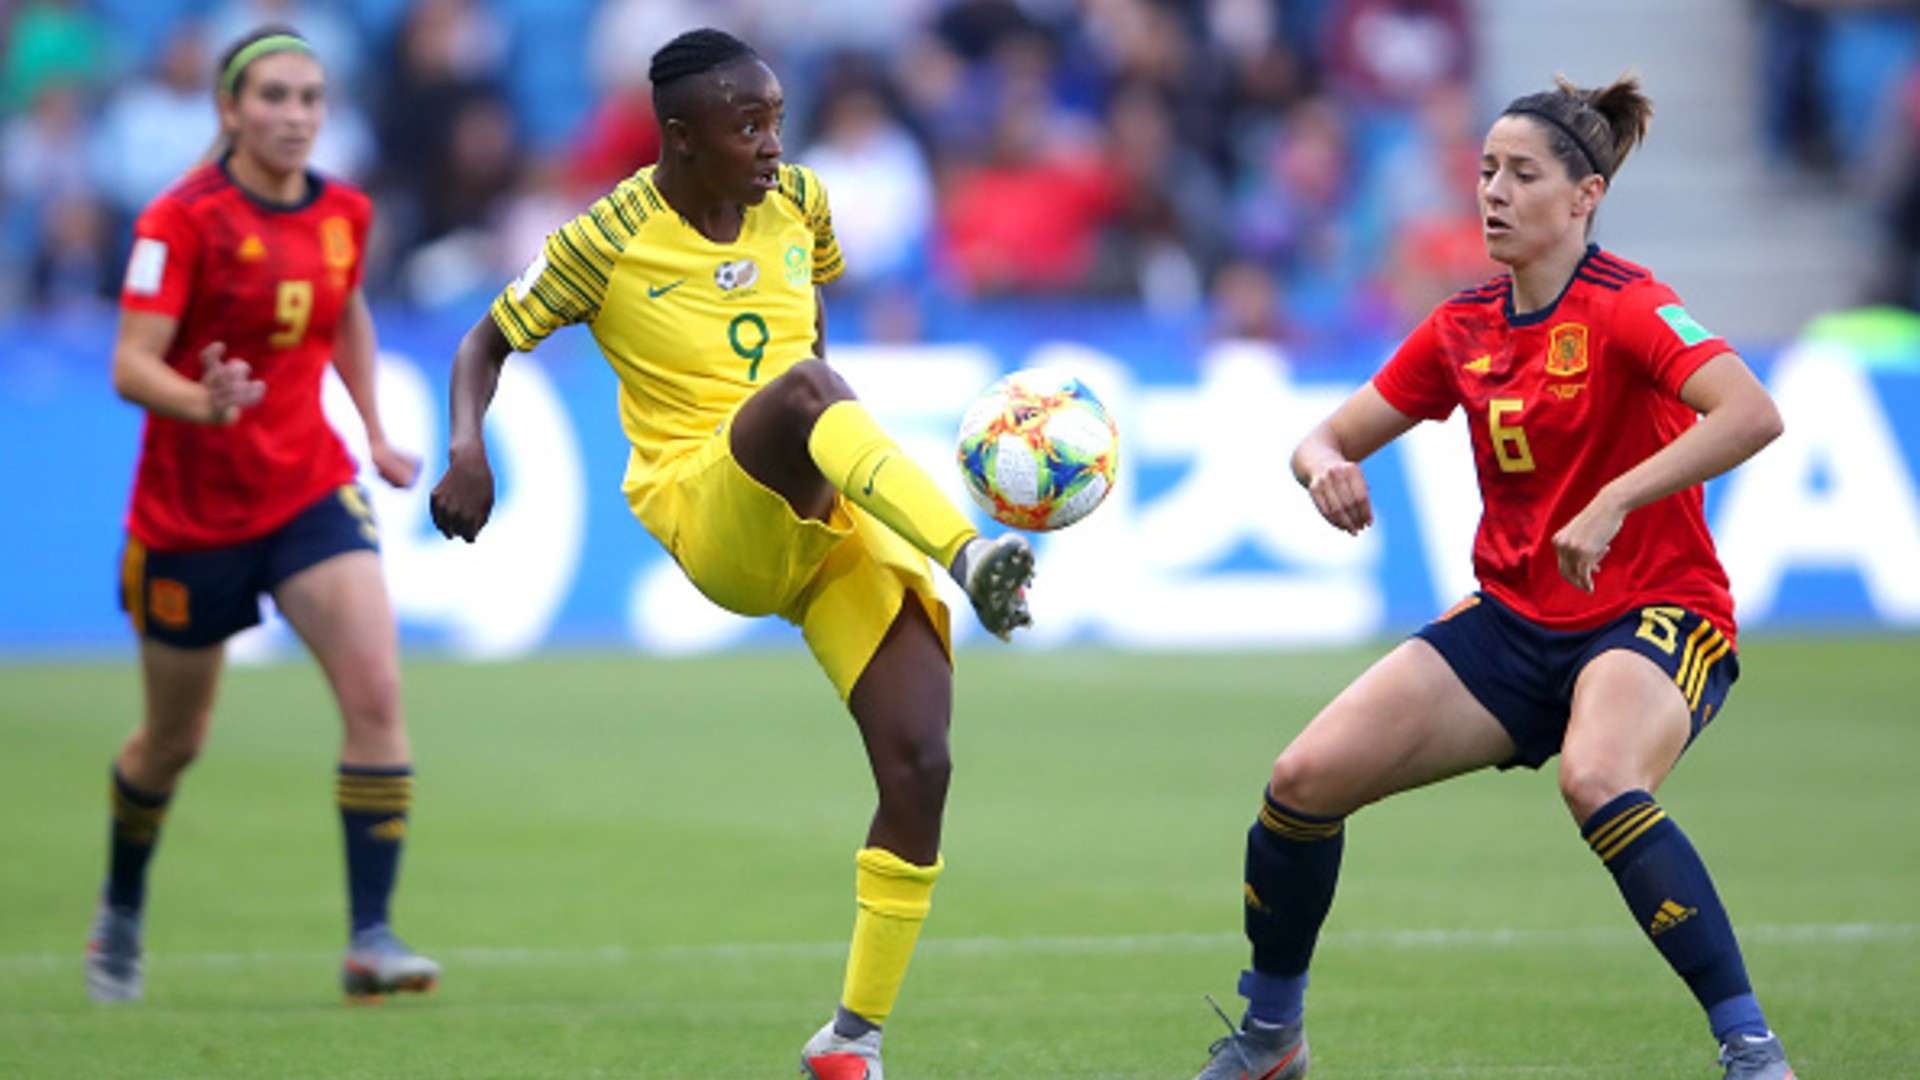 'This is another chance' - Ellis urges Mthandi to continue learning in Spain